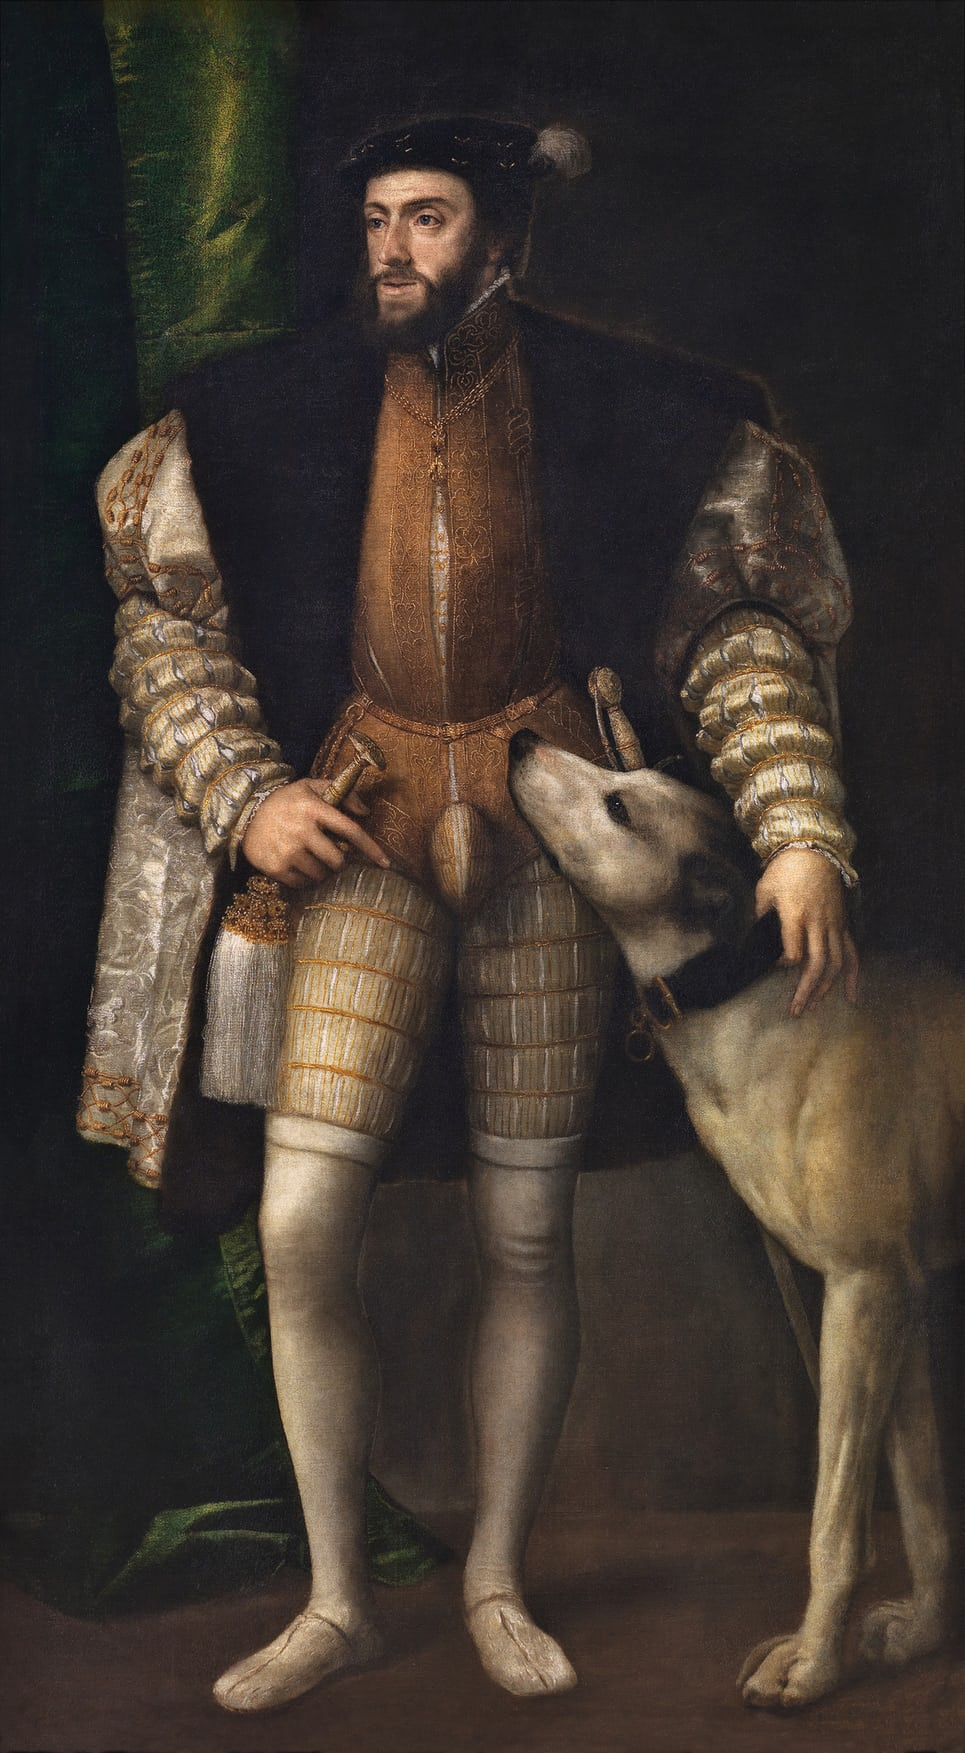 Charles V with a Dog, 1533 by Titian. Photograph Museo Nacional del Prado